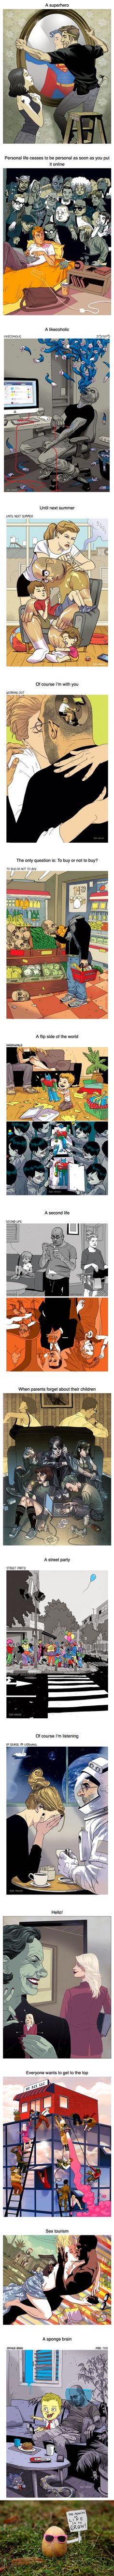 15 biting illustrations that uncover all the ills of the world (Credit: Asaf Hanuka)